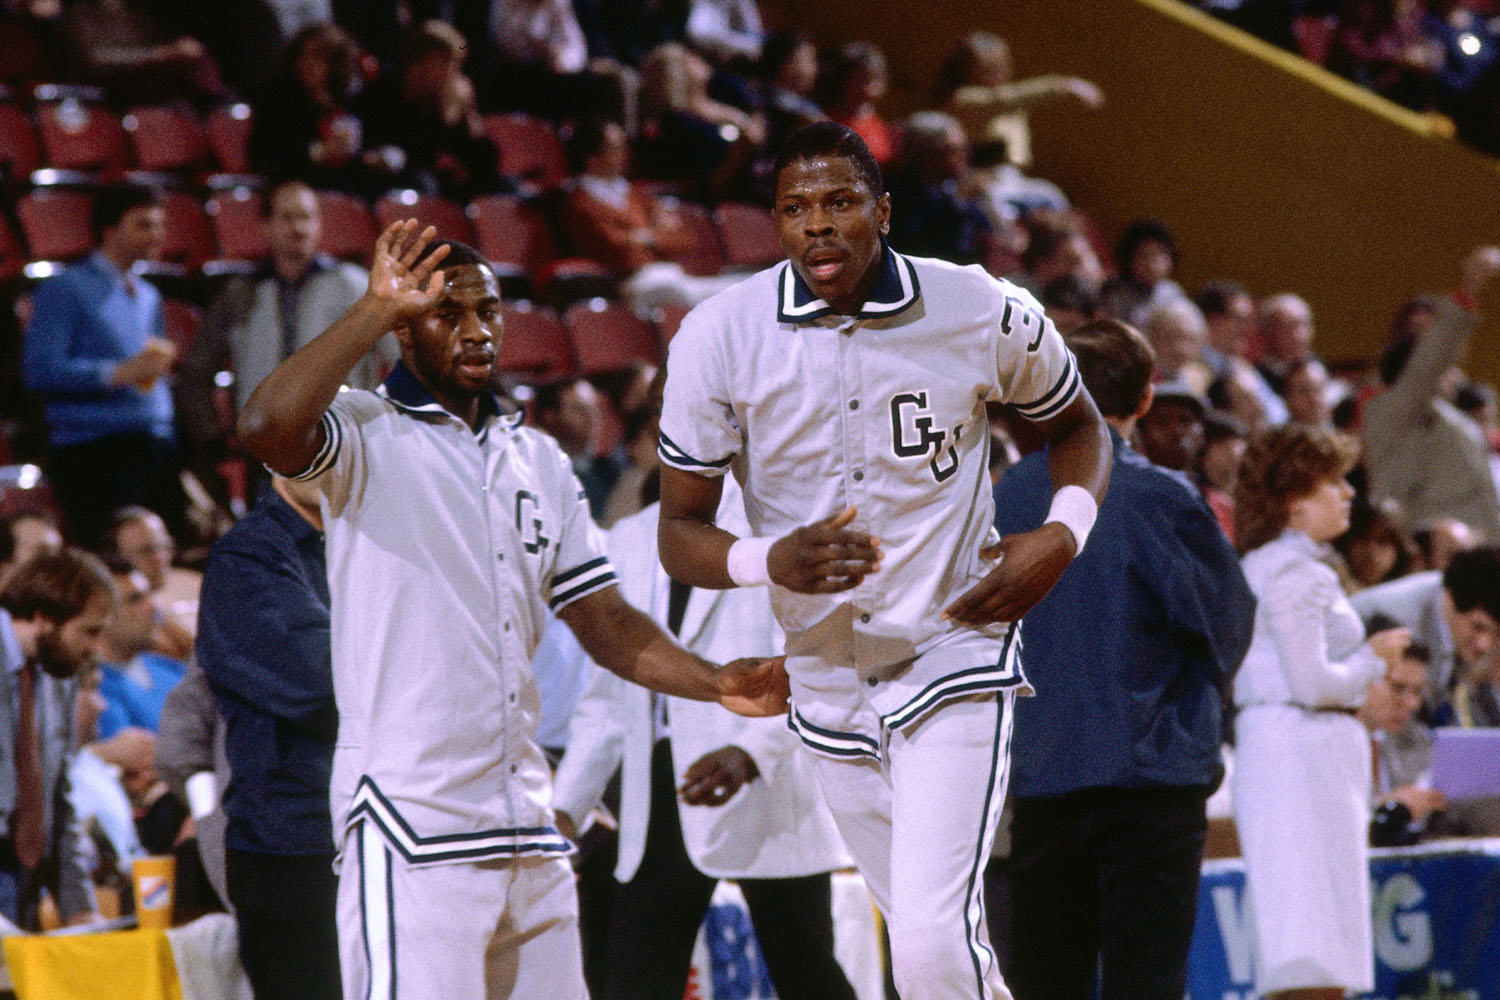 Patrick Ewing of Georgetown University walks on the court during warm-ups prior to NCAA game played in 1983 at the Boston Garden in Boston, Massachusetts.